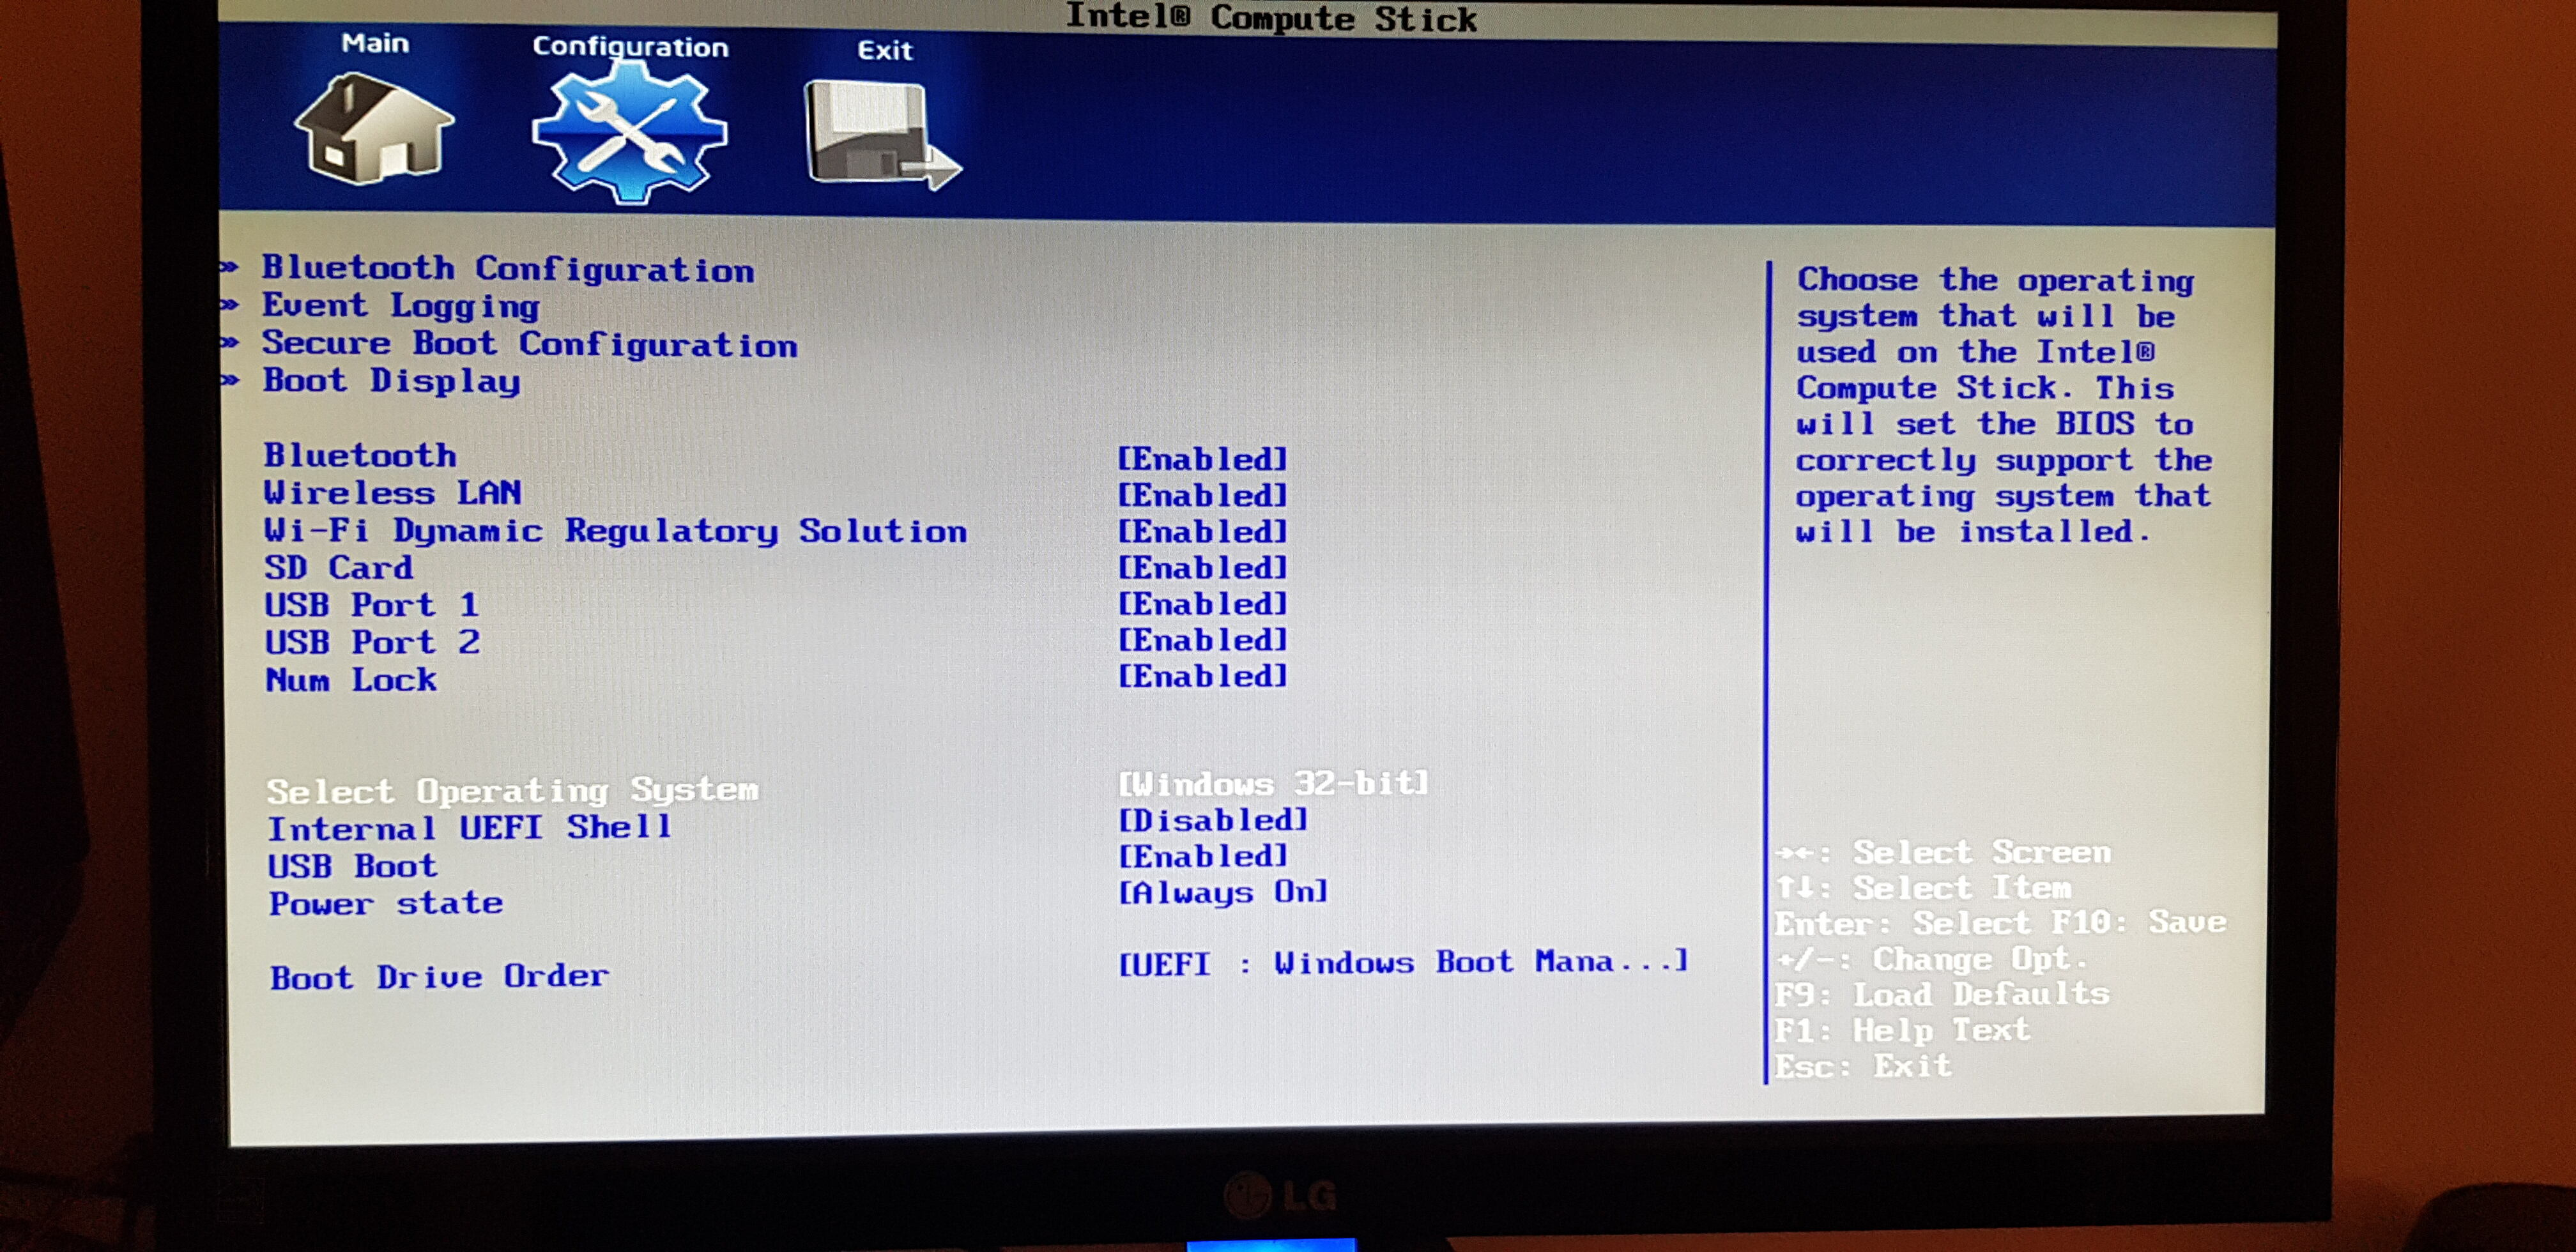 BIOS default settings